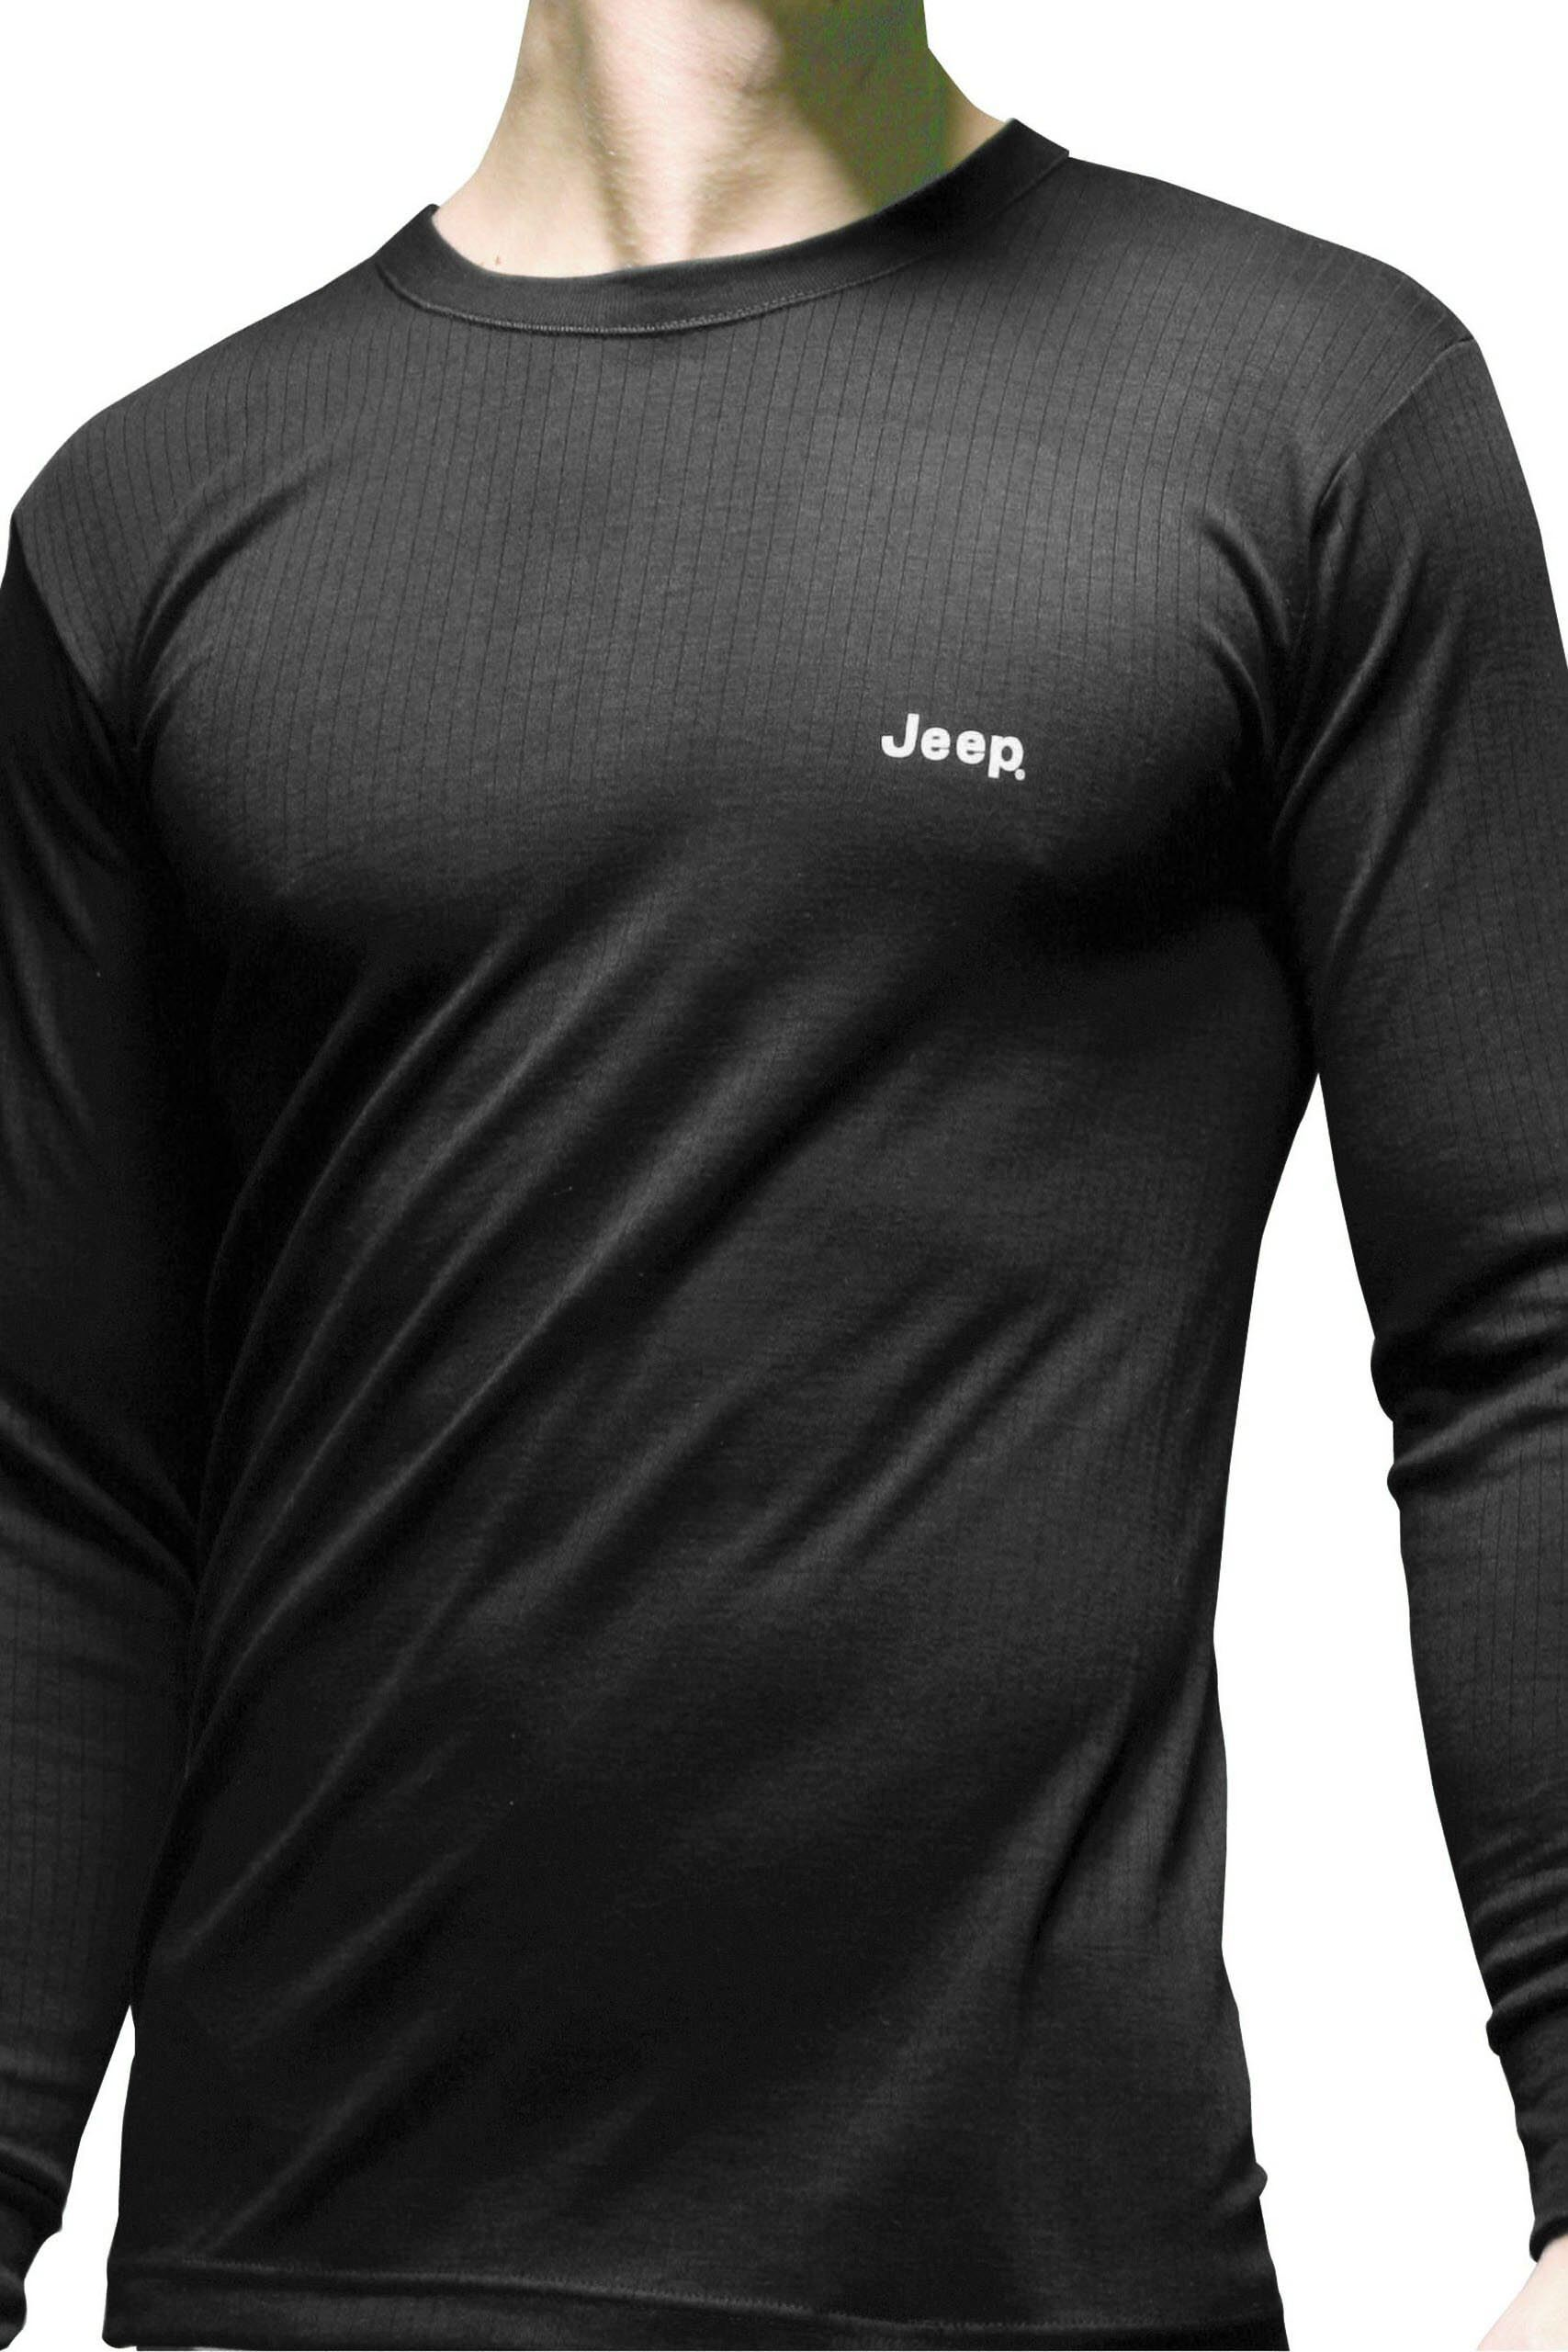 Image of 1 Pack Black Long Sleeved Thermal T-Shirt Men's Small - Jeep